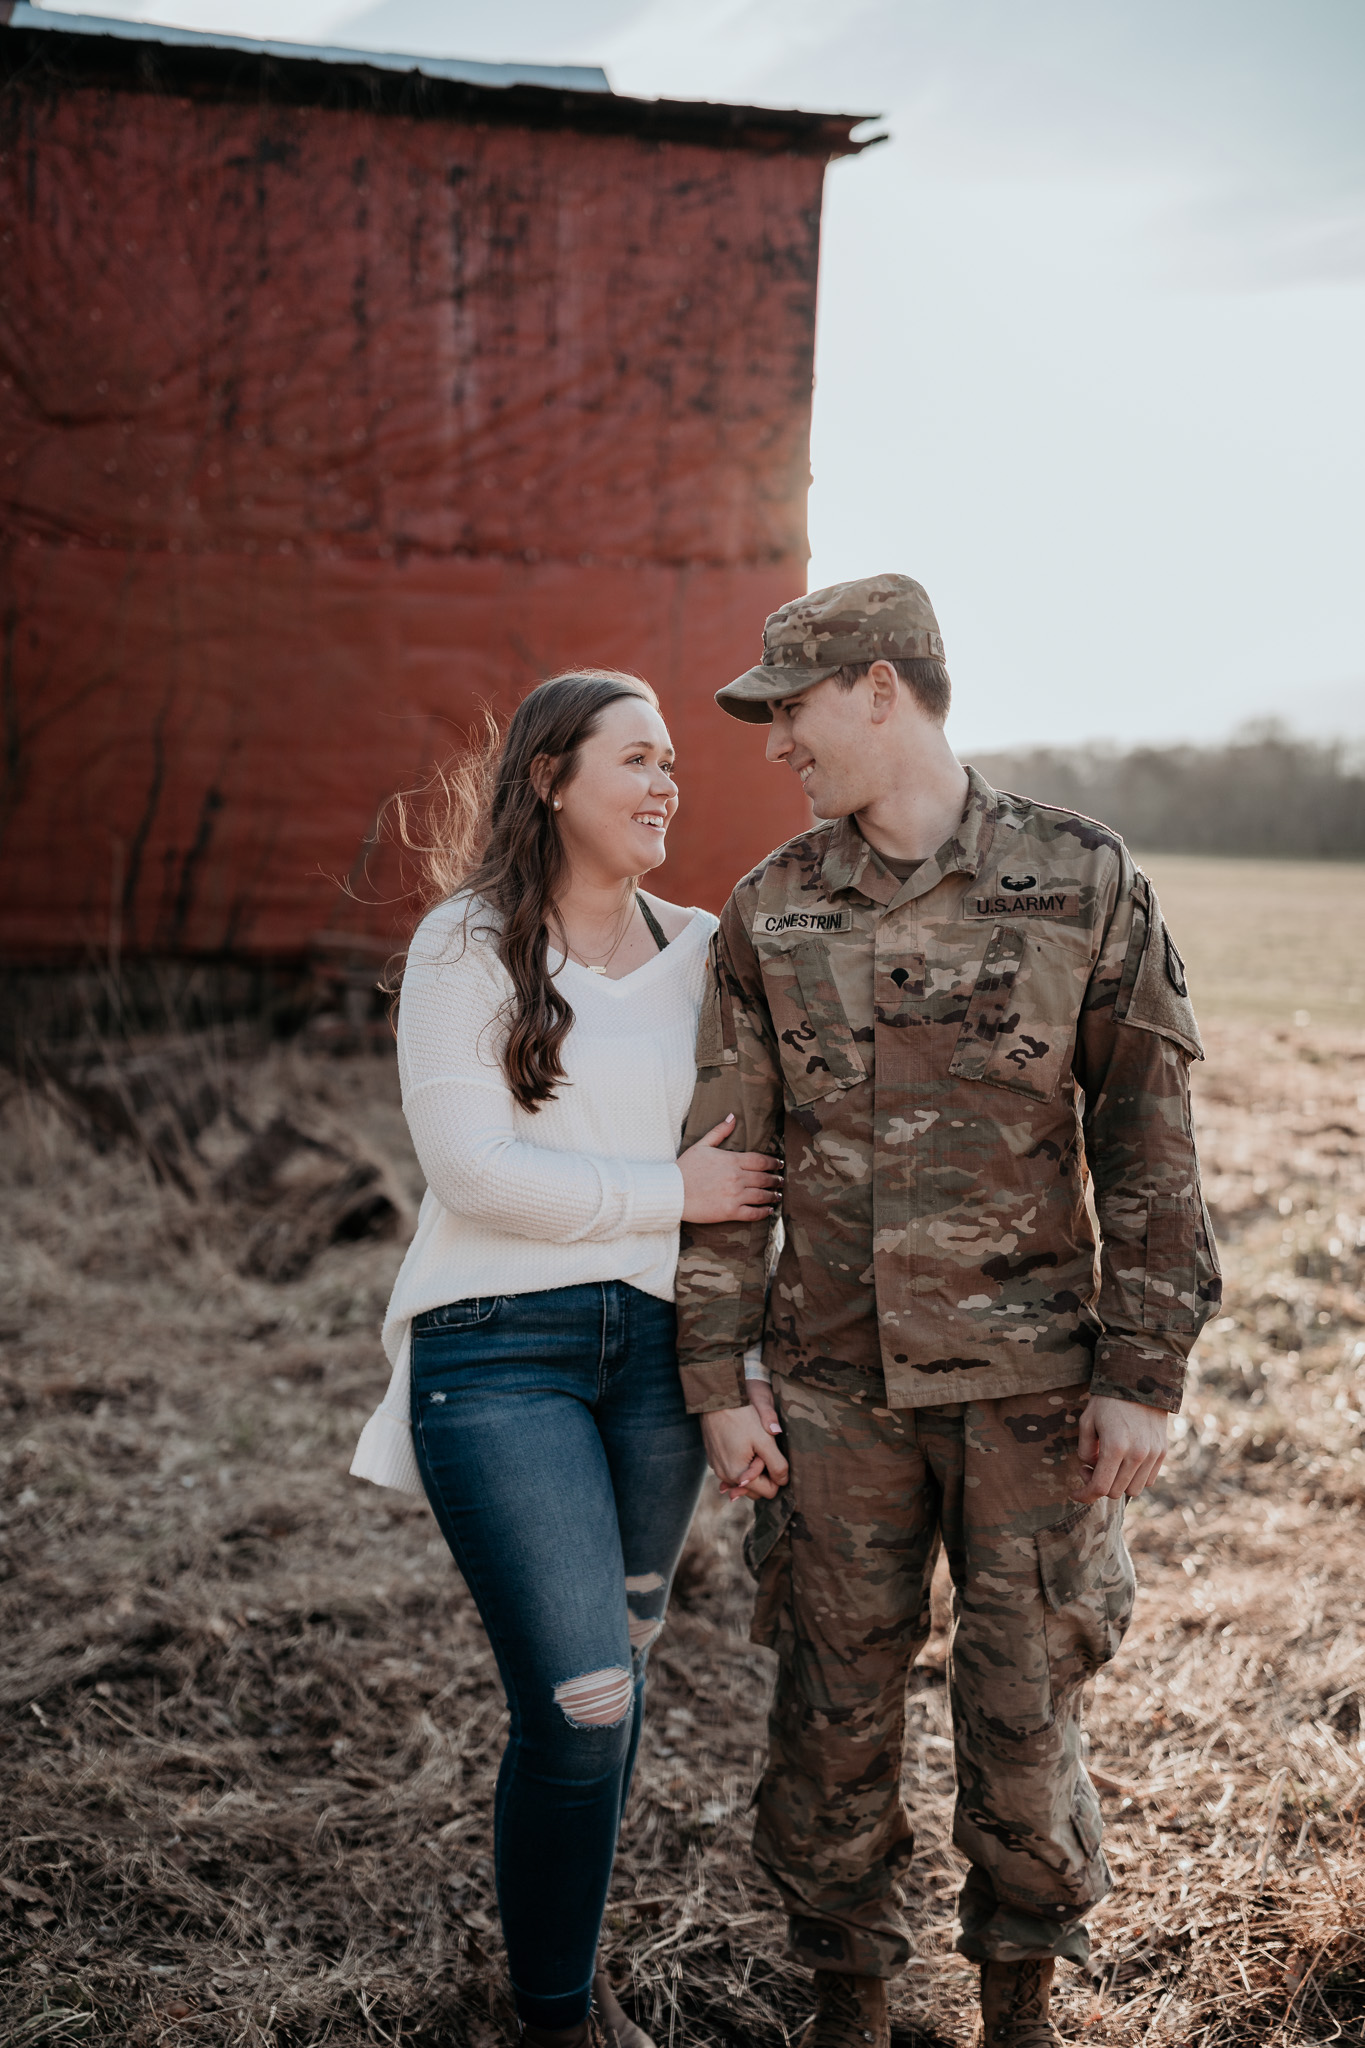 man in army uniform with girl